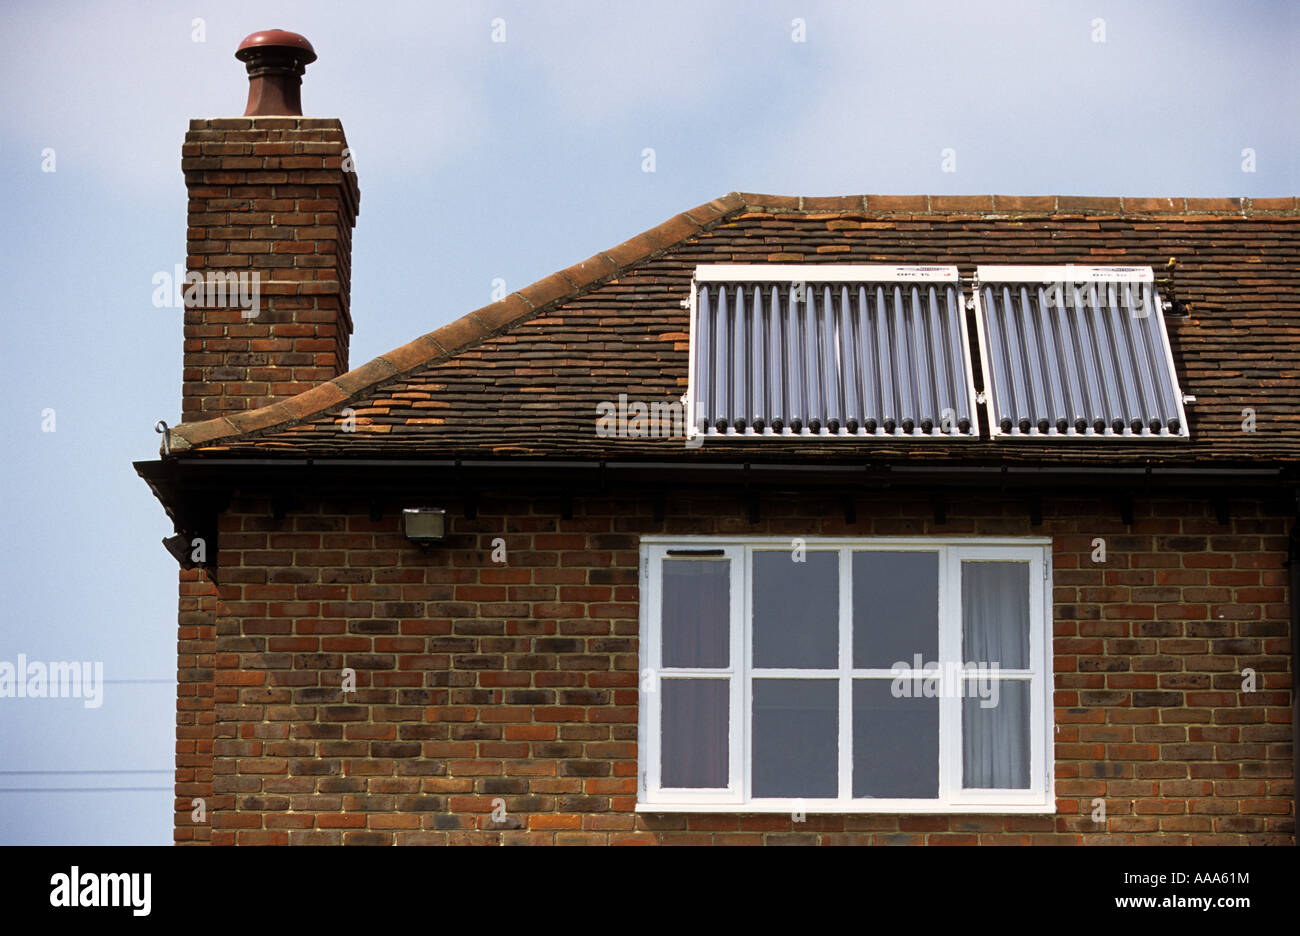 Photovoltaics or solar panels suppling hot water to a residential property in Braintree, Essex, UK. - Stock Image